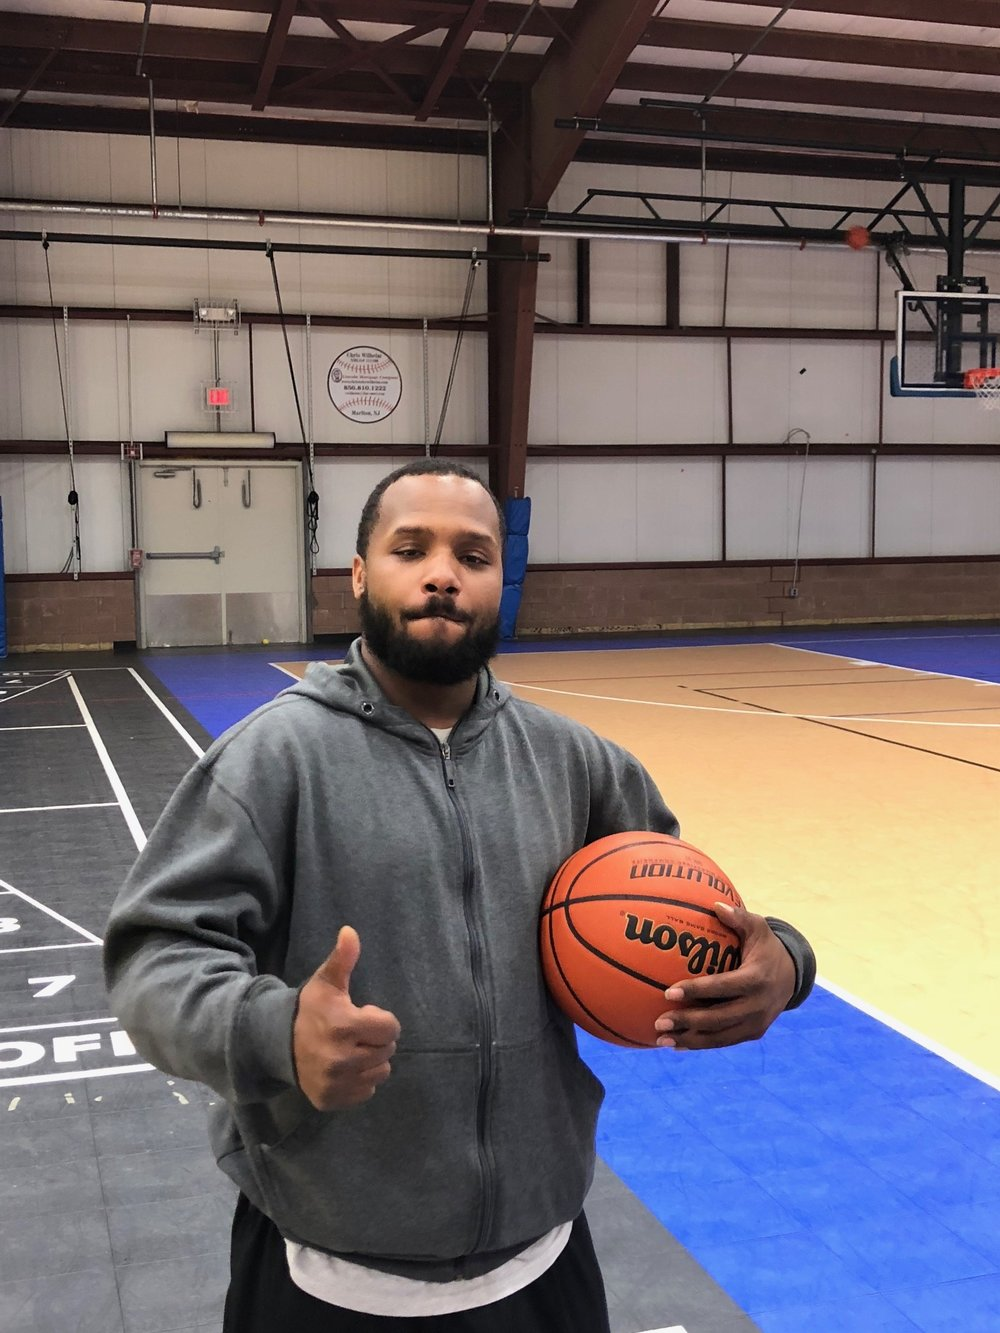 Skills Trainer - Coach - Tony has been getting his hands dirty with the organization since 2015. His high school years were played at Pemberton in Burlington County New Jersey, and he attended Rutgers and Bethune Cookman University. Tony comes to the staff with knowledge of a Semi-Pro basketball league when he played for the South Jersey Thunder. His most fondest achievements in his basketball career were playing three years of Varsity basketball as a point guard, and playing in a college all star game and dropping 50 points.Favorite Basketball Players: Stephon Marbury and Rafer AlstonFavorite Basketball Team: The New York KnicksMost Influential Coach to Tony: Tony Normil Sr.Favorite part about coaching: Helping kids get better and watching the kids see for themselves that their hard work is paying off.Training Specialty: Ball handling, moves off the dribble, defense and drawing out energy from players.Favorite Quote: